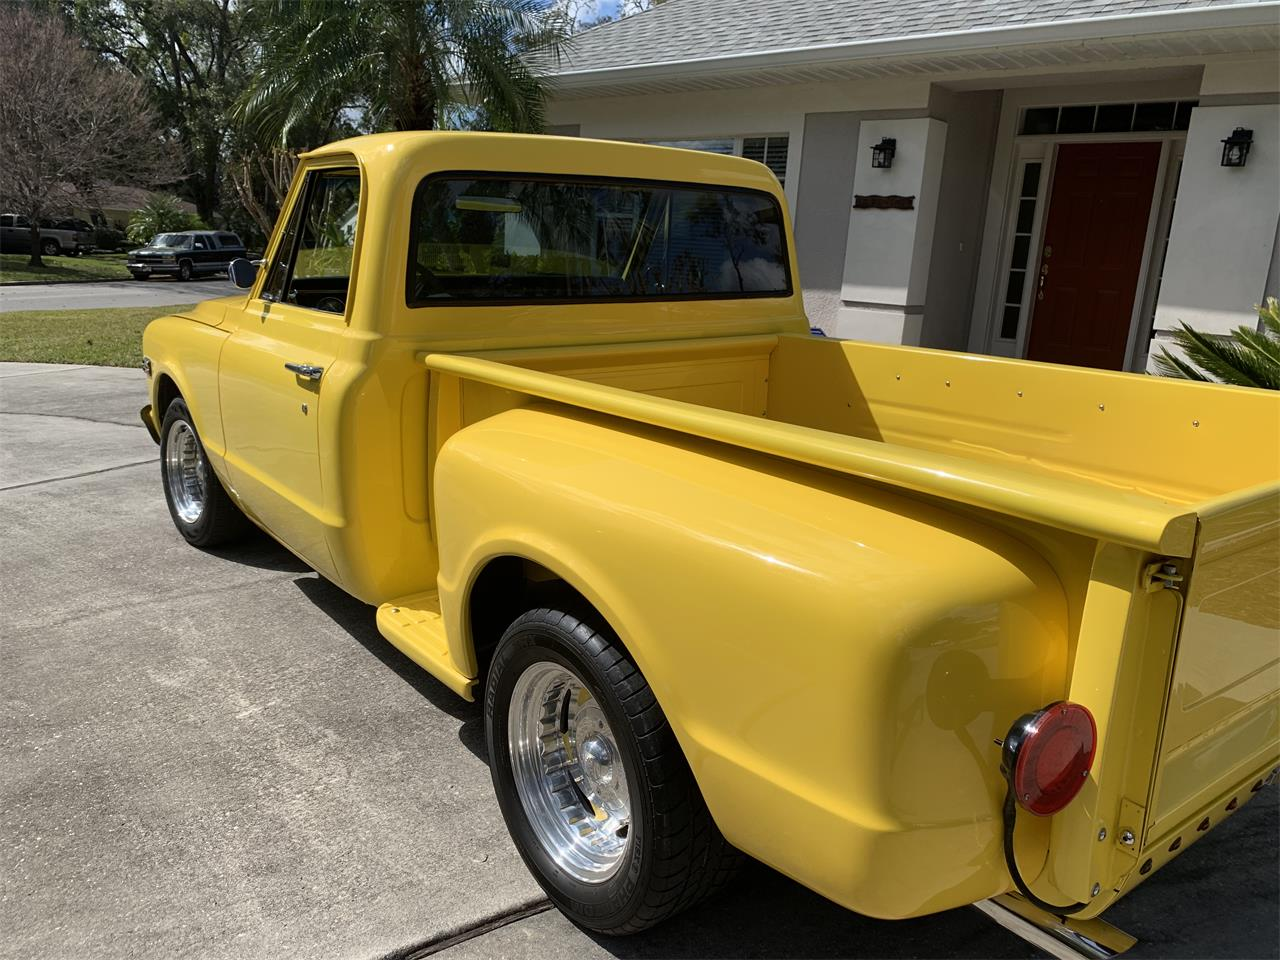 Large Picture of '68 Chevrolet C10 located in Florida - $29,900.00 Offered by a Private Seller - PBX6